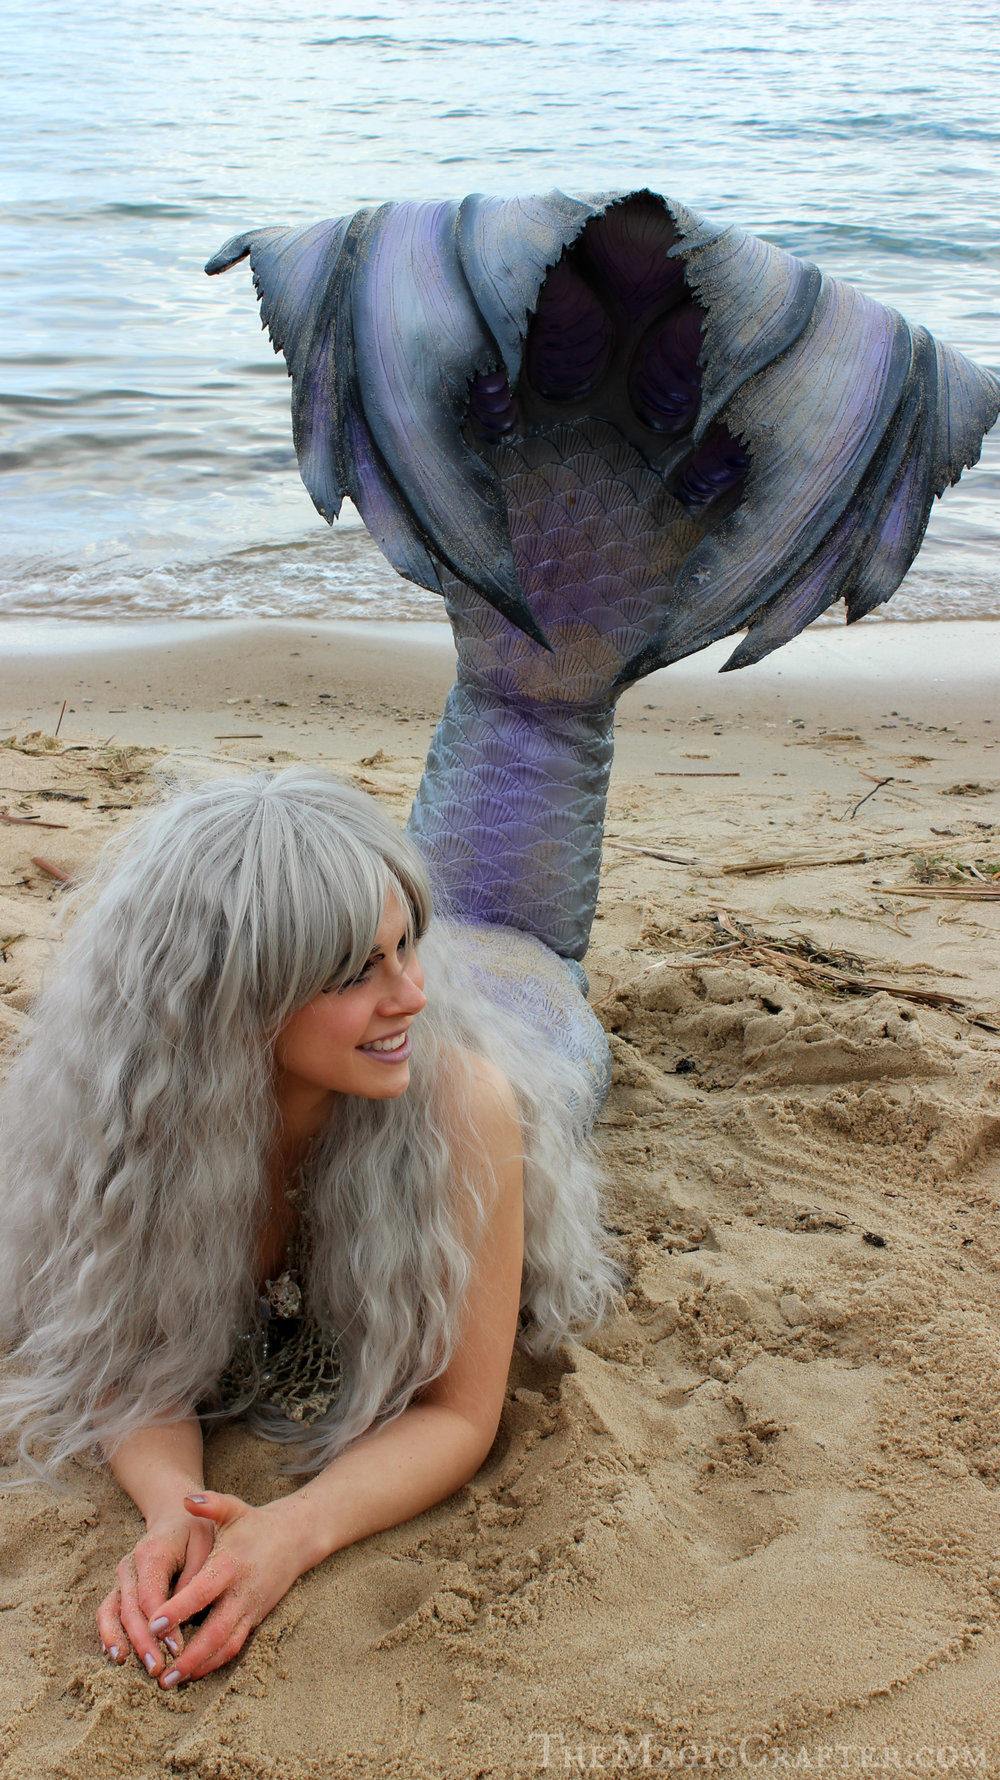 Mermaid kisses and the best of wishes my lovely friend! Be on the lookout for more mermaiding cosplay videos coming soon!